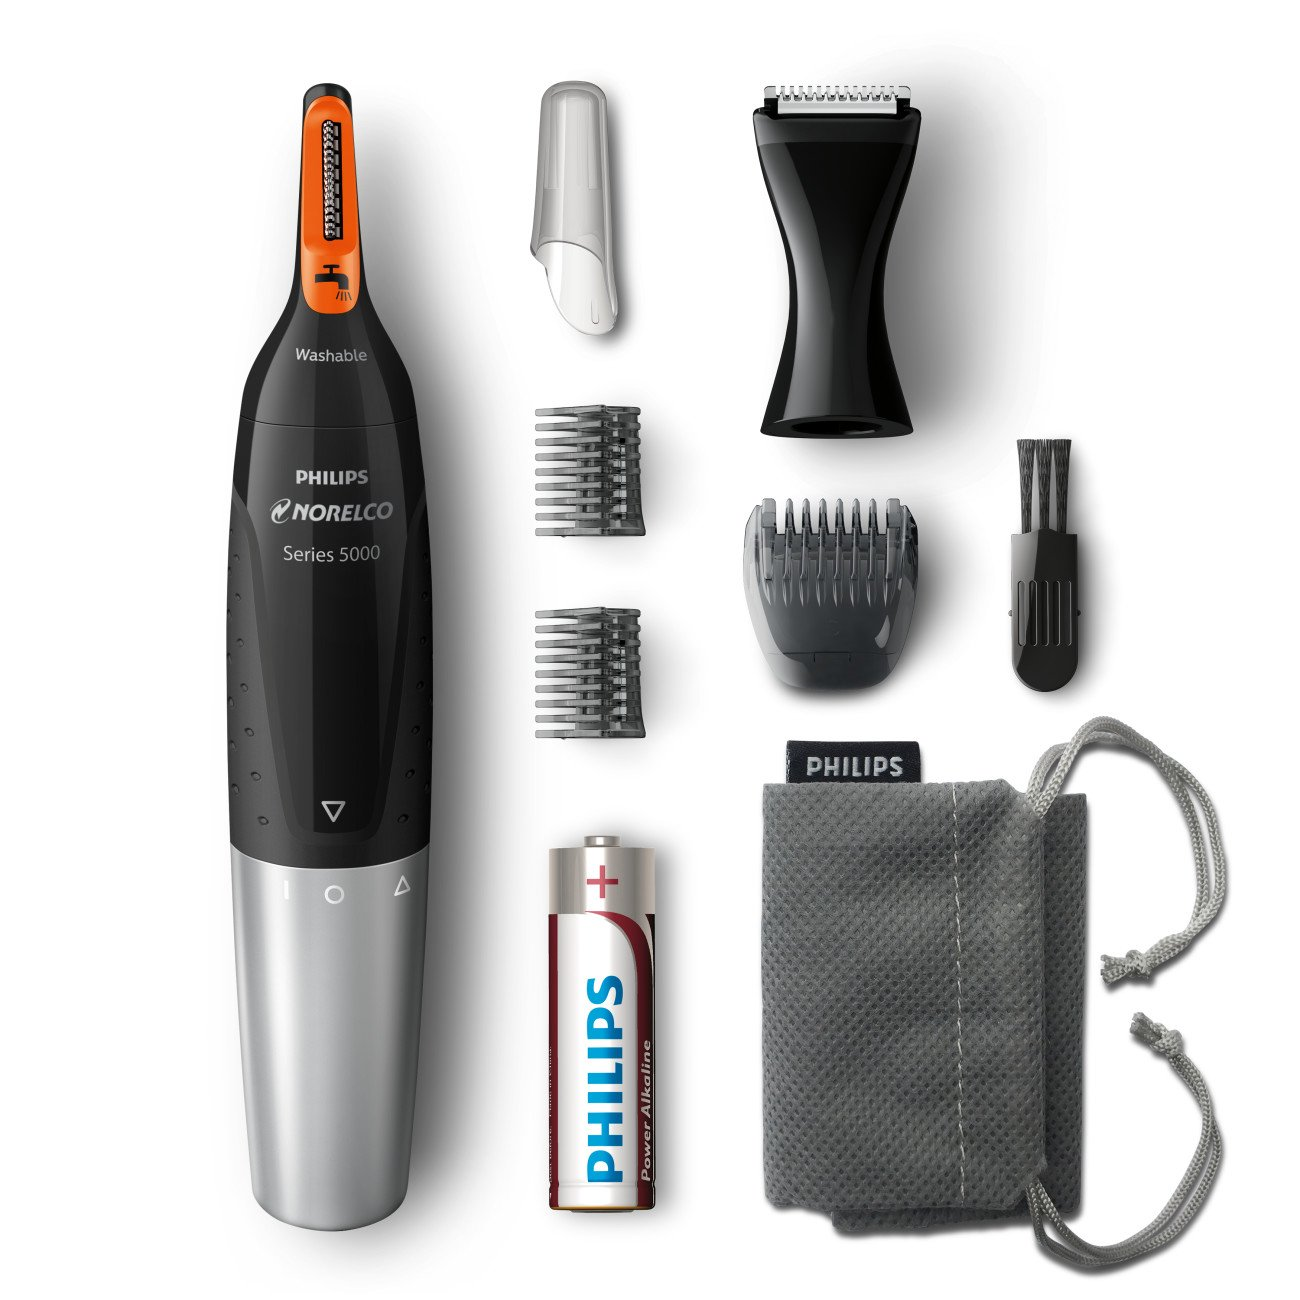 Philips Washable Nose Hair Trimmer (5100)